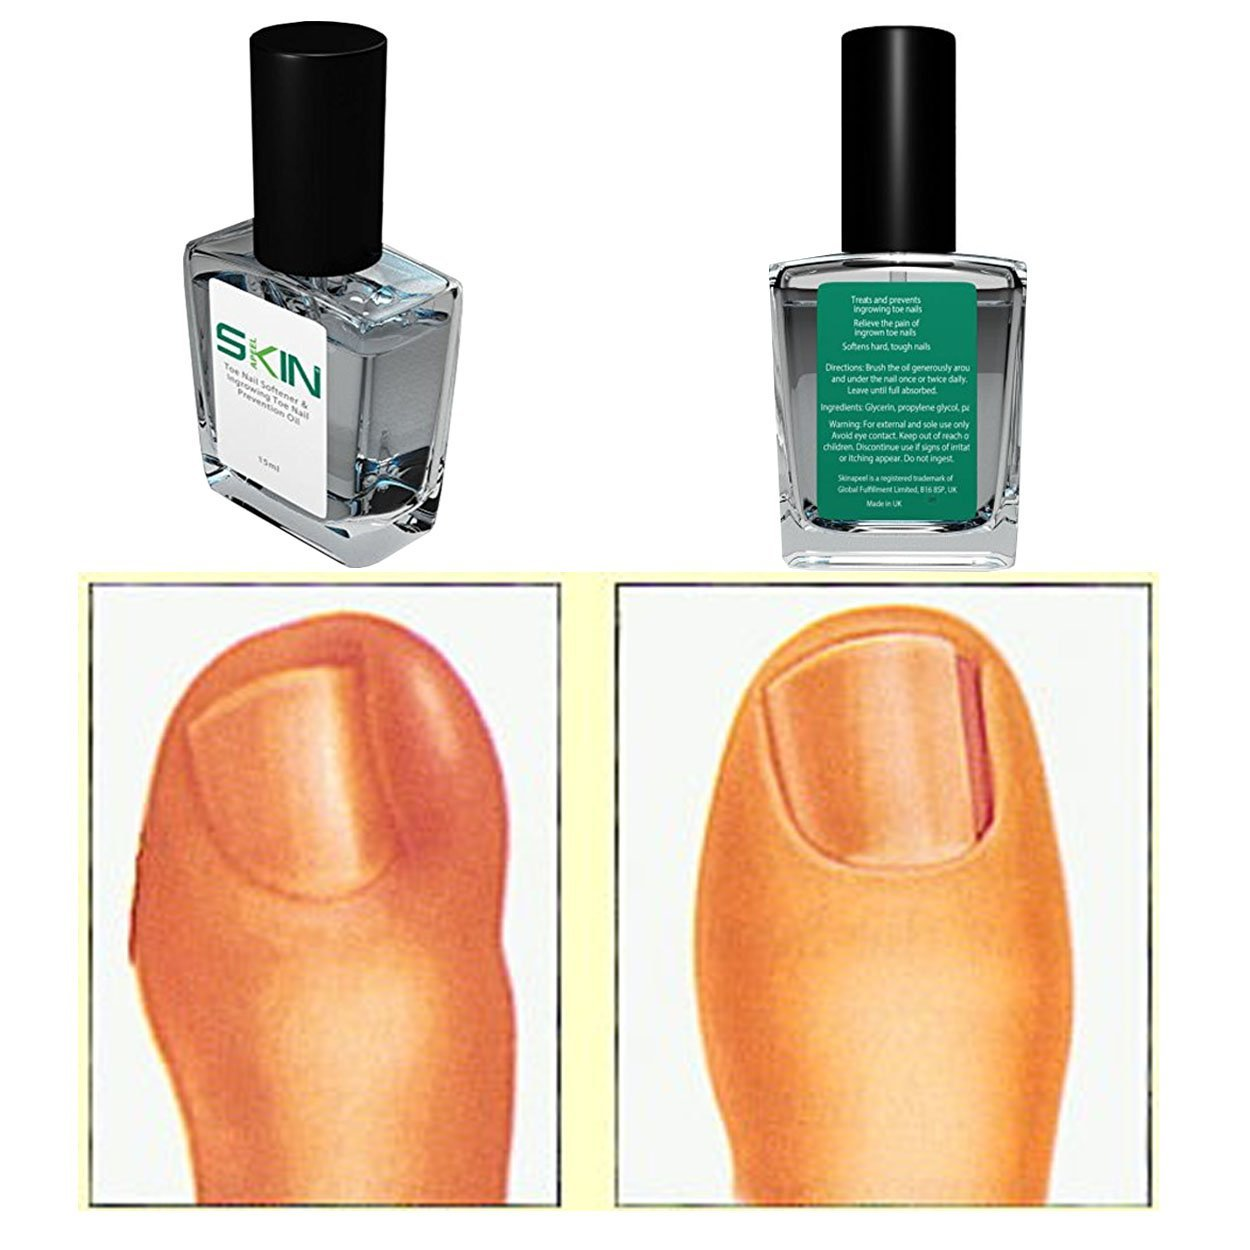 Skinapeel Toe Nail Softener and Ingrowing Toenail Prevention Oil by  Beauty Pop Cosmetics